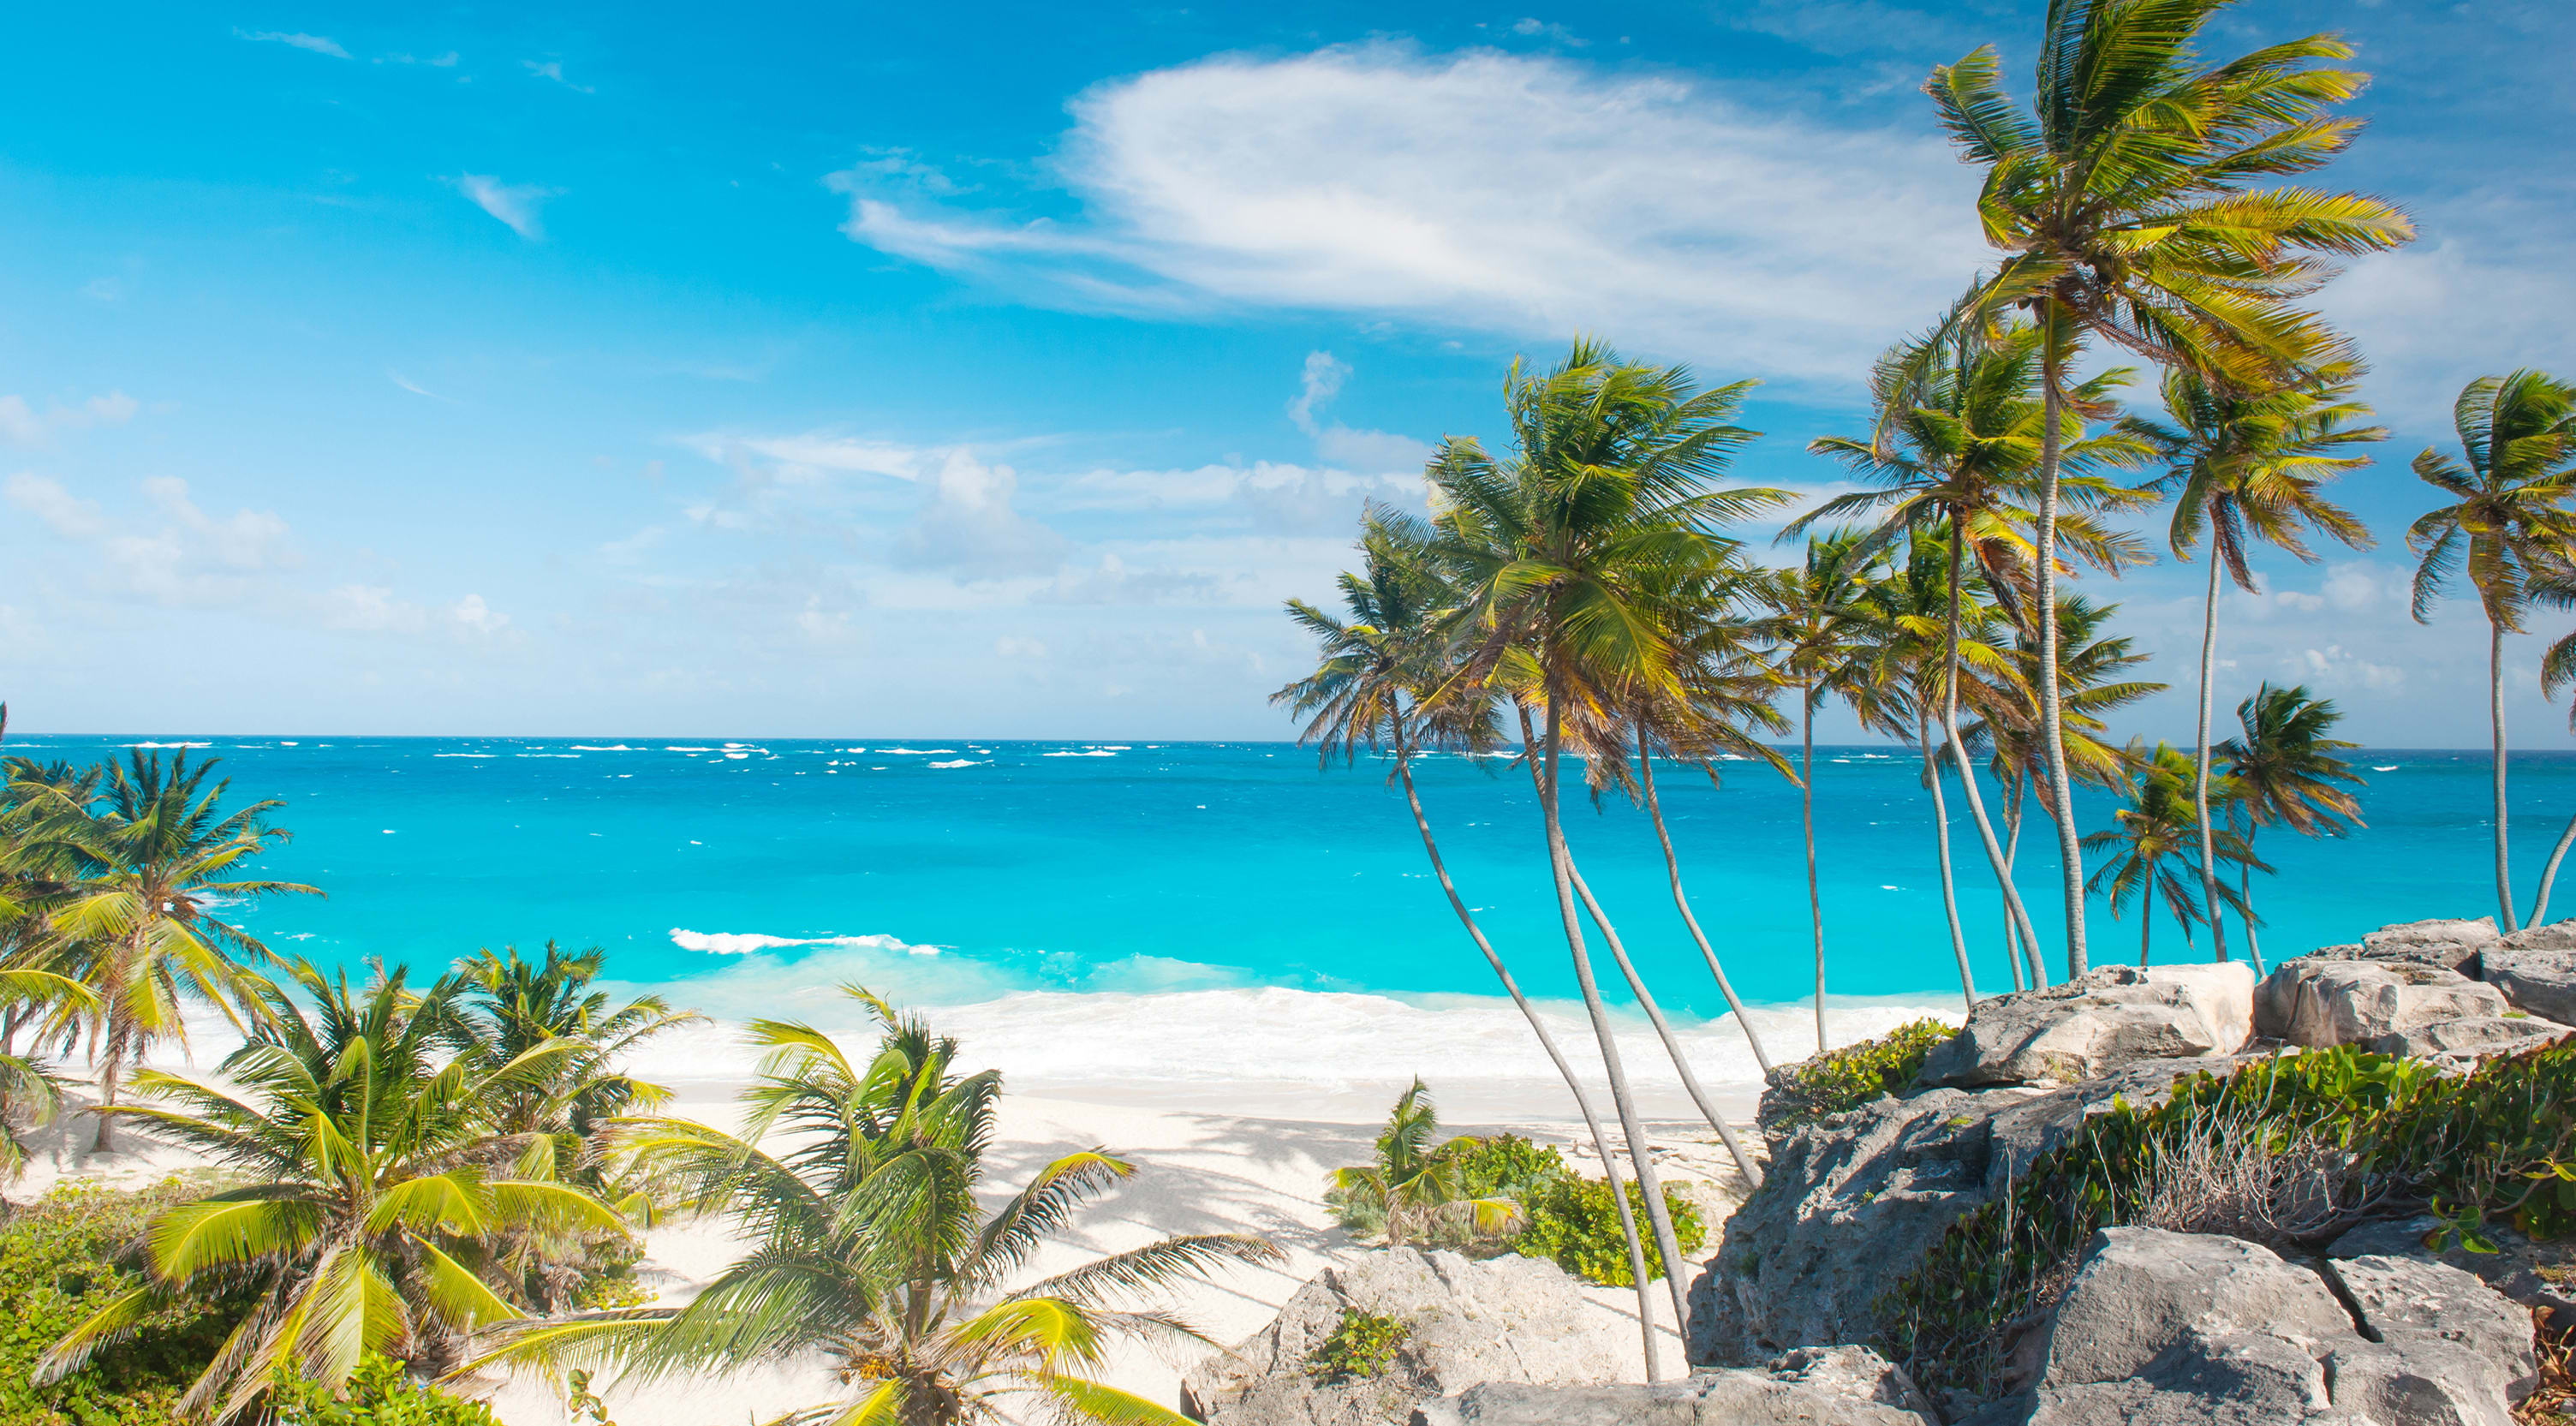 A wind sand beach with turquoise sea and palm trees